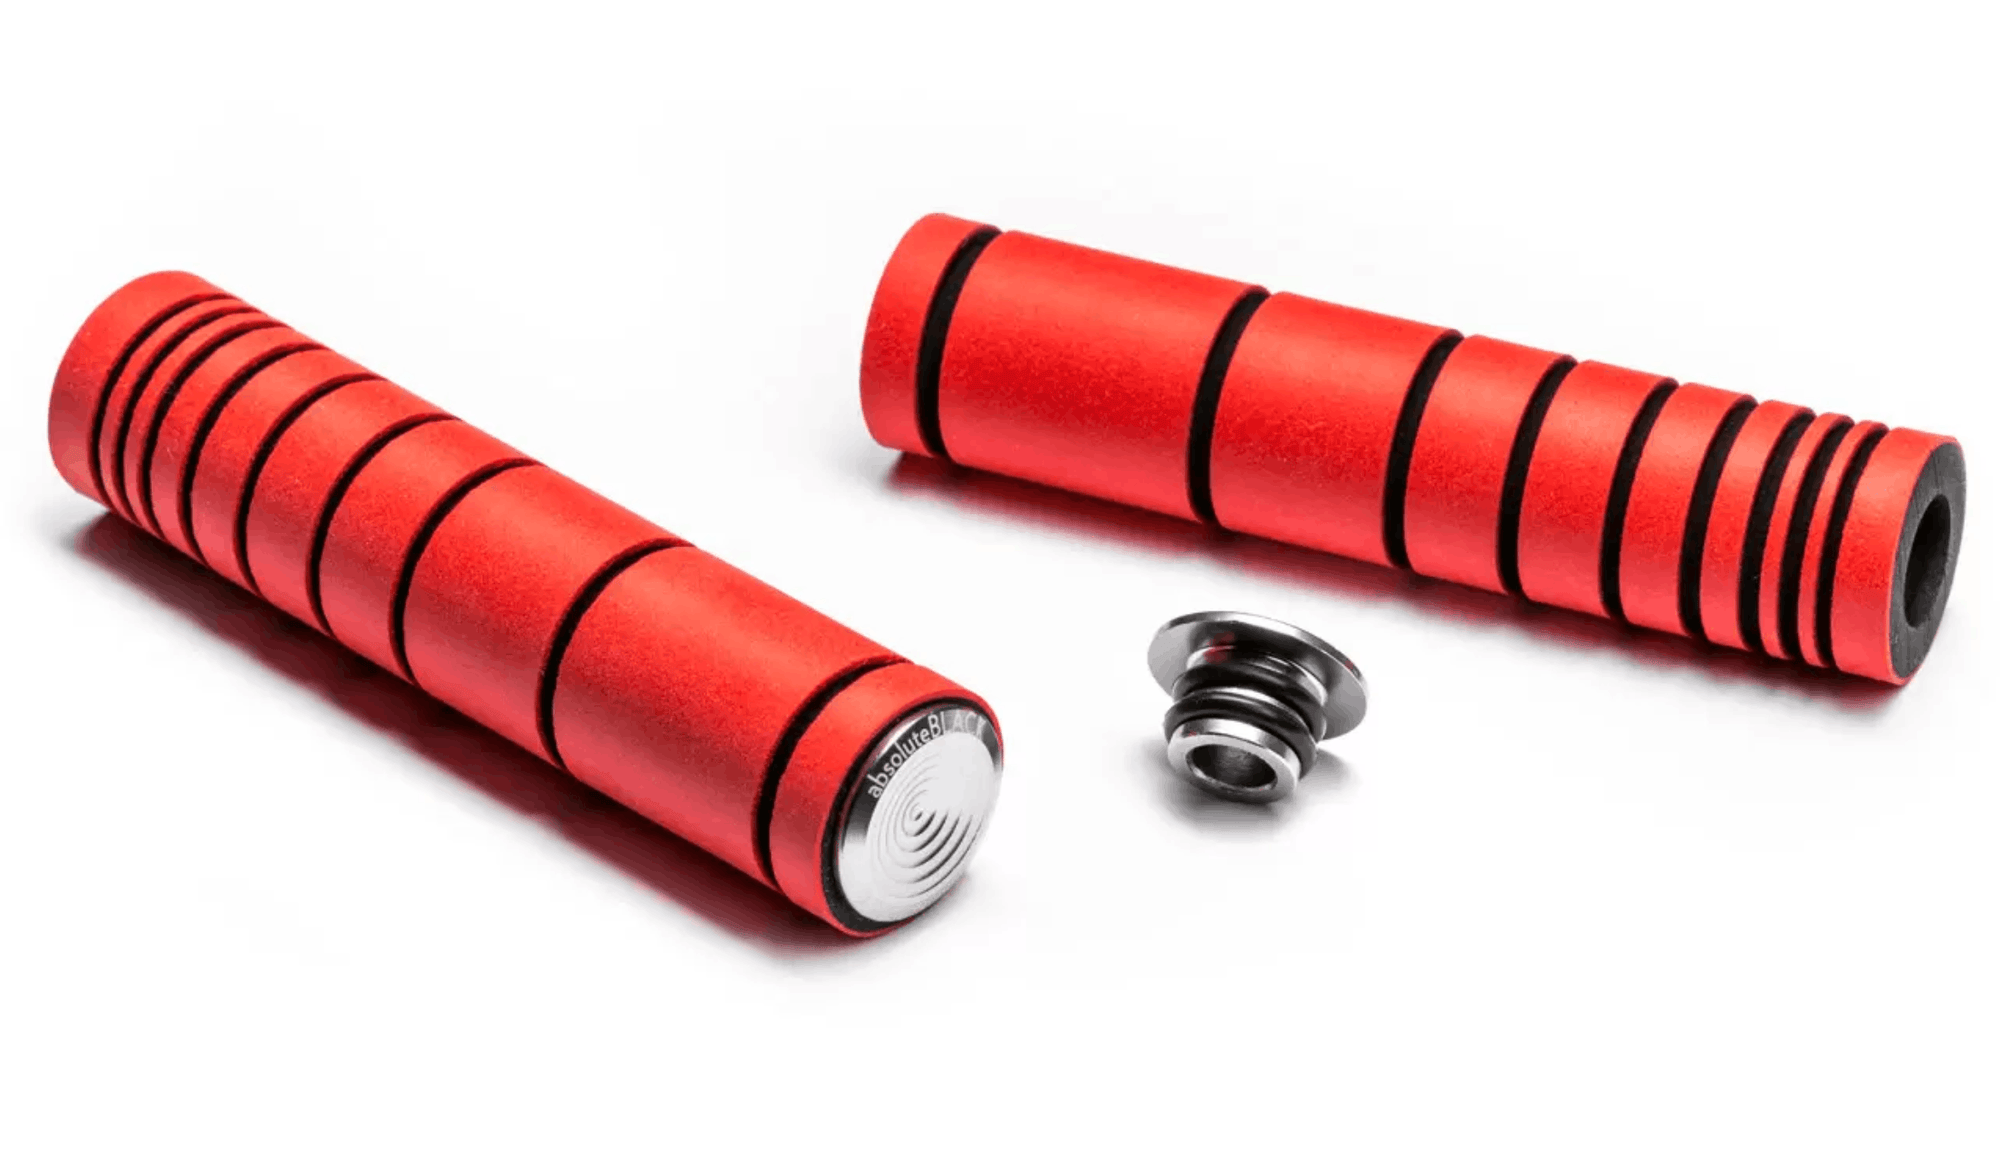 ABSOLUTEBLACK Premium Silicone Dual Density MTB Grips (Red)